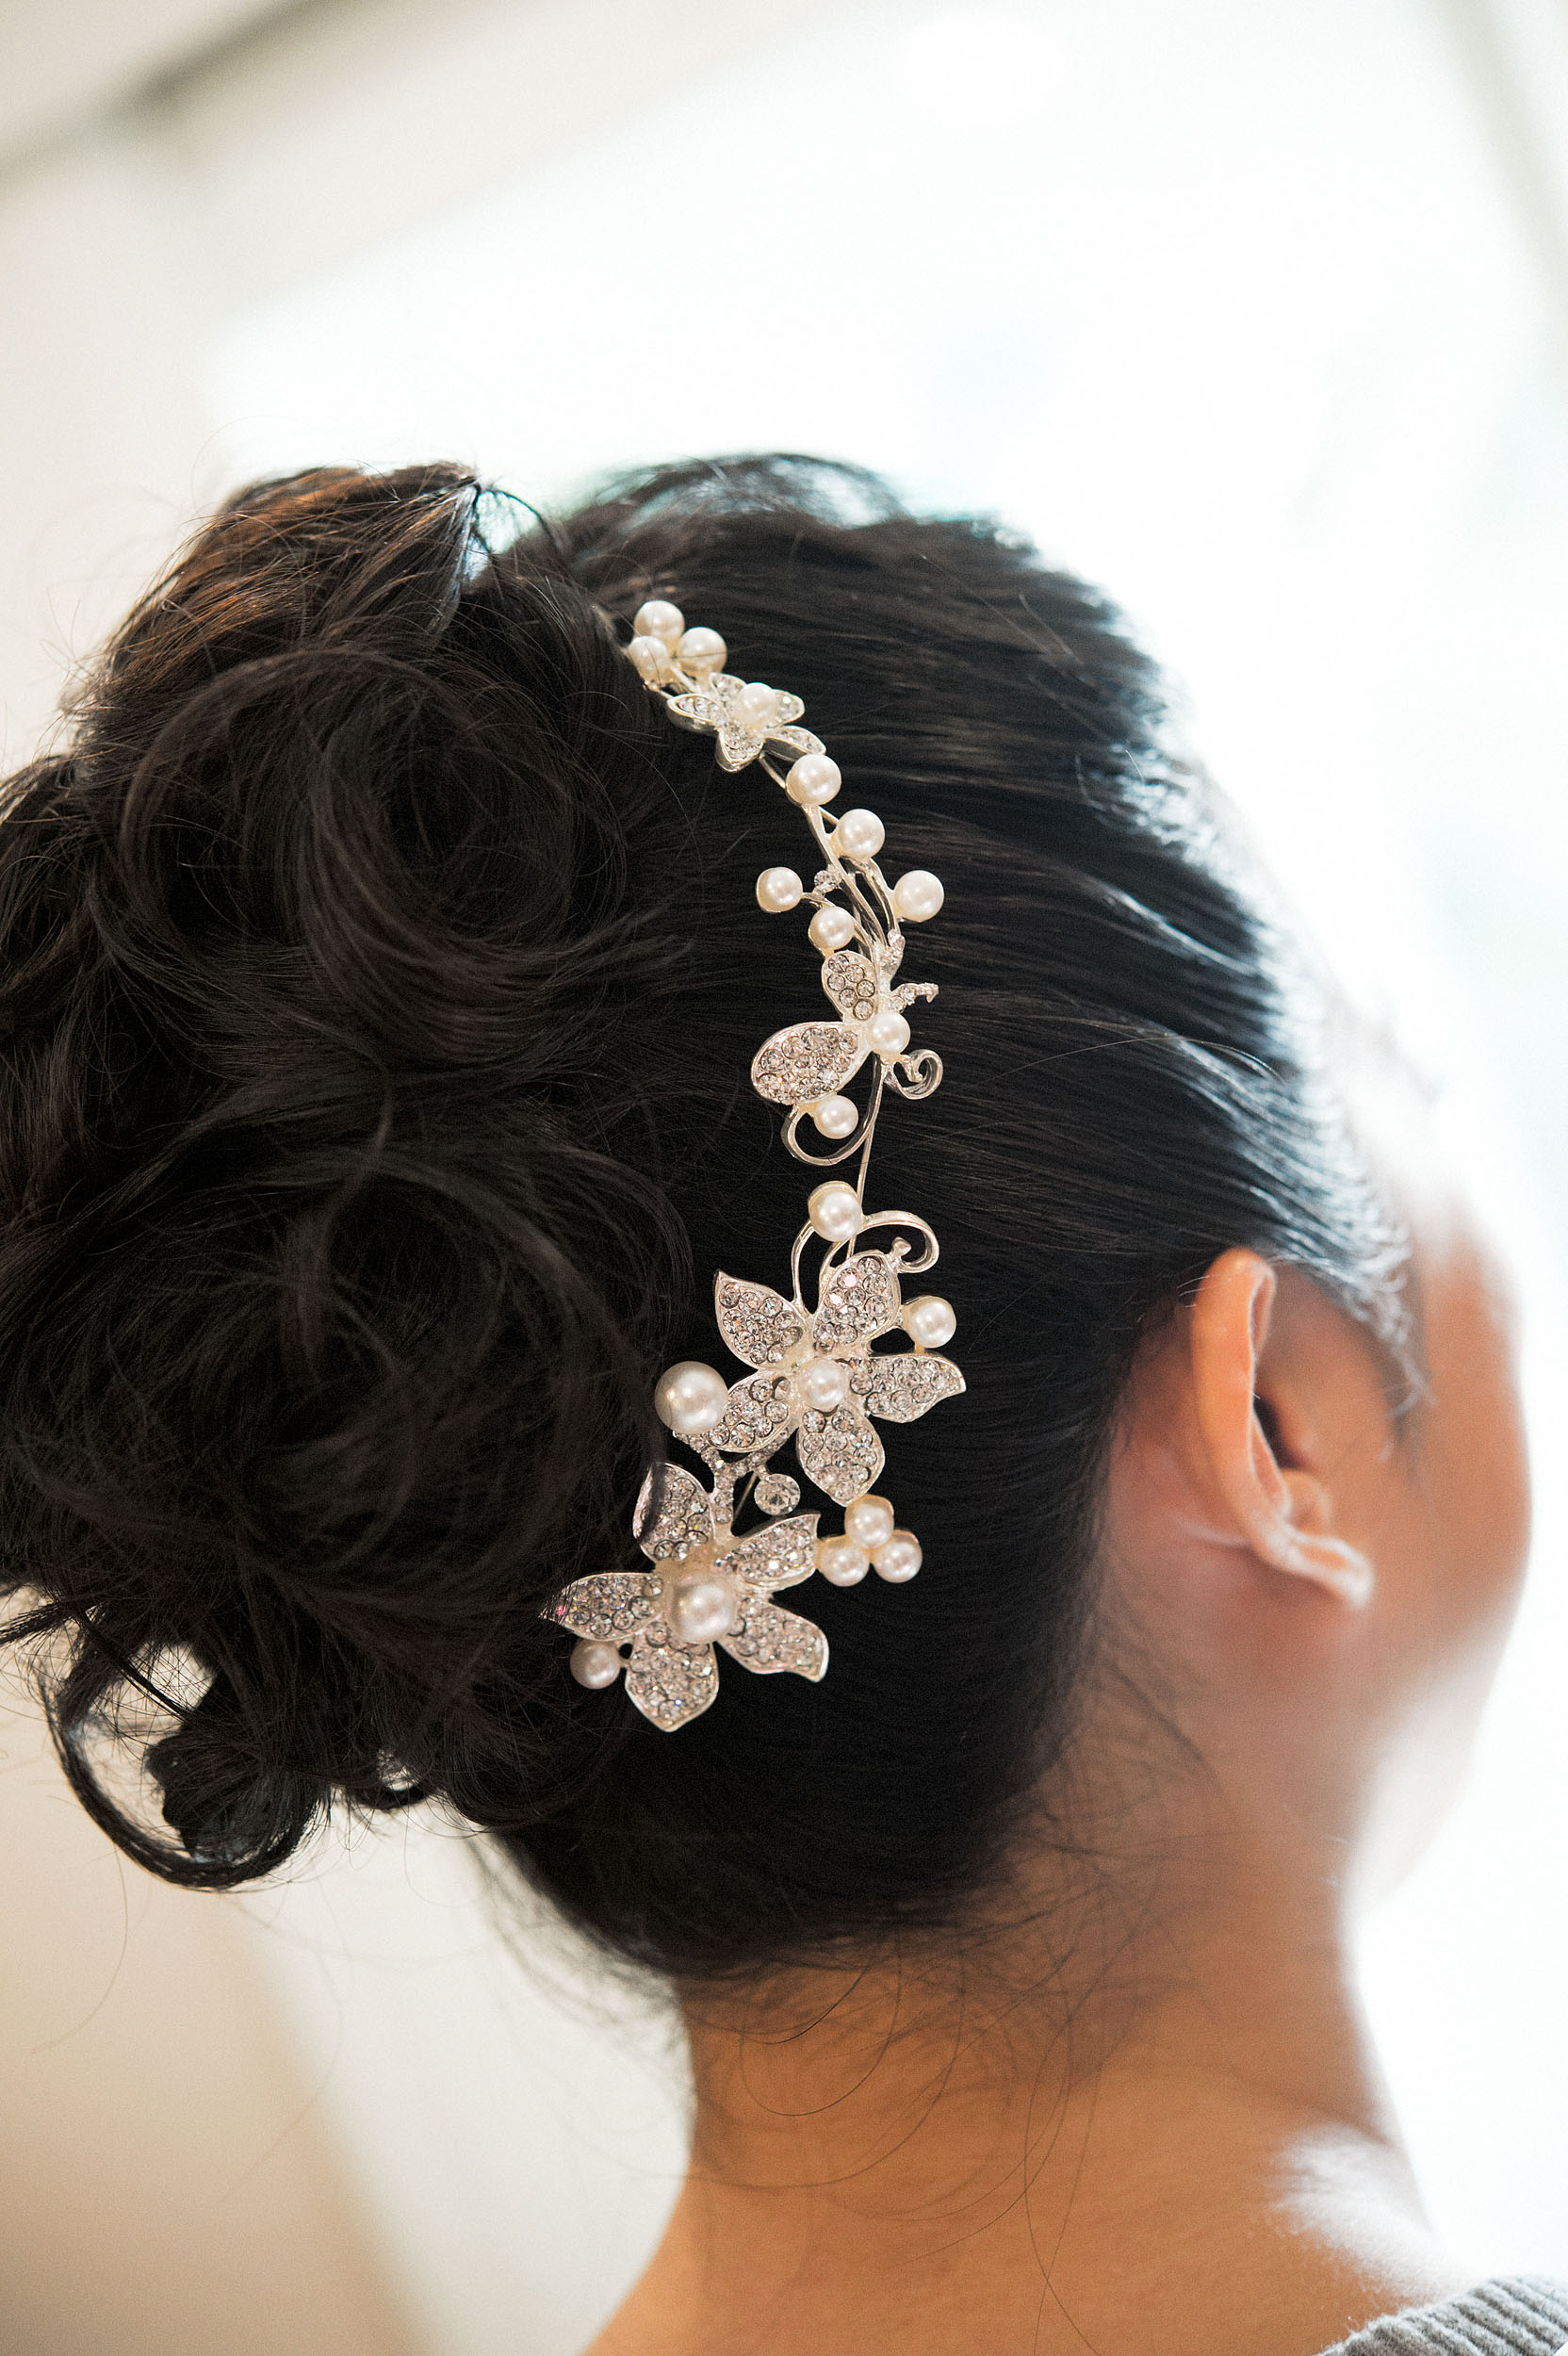 Bride wearing floral crystal and pearl hair clip.